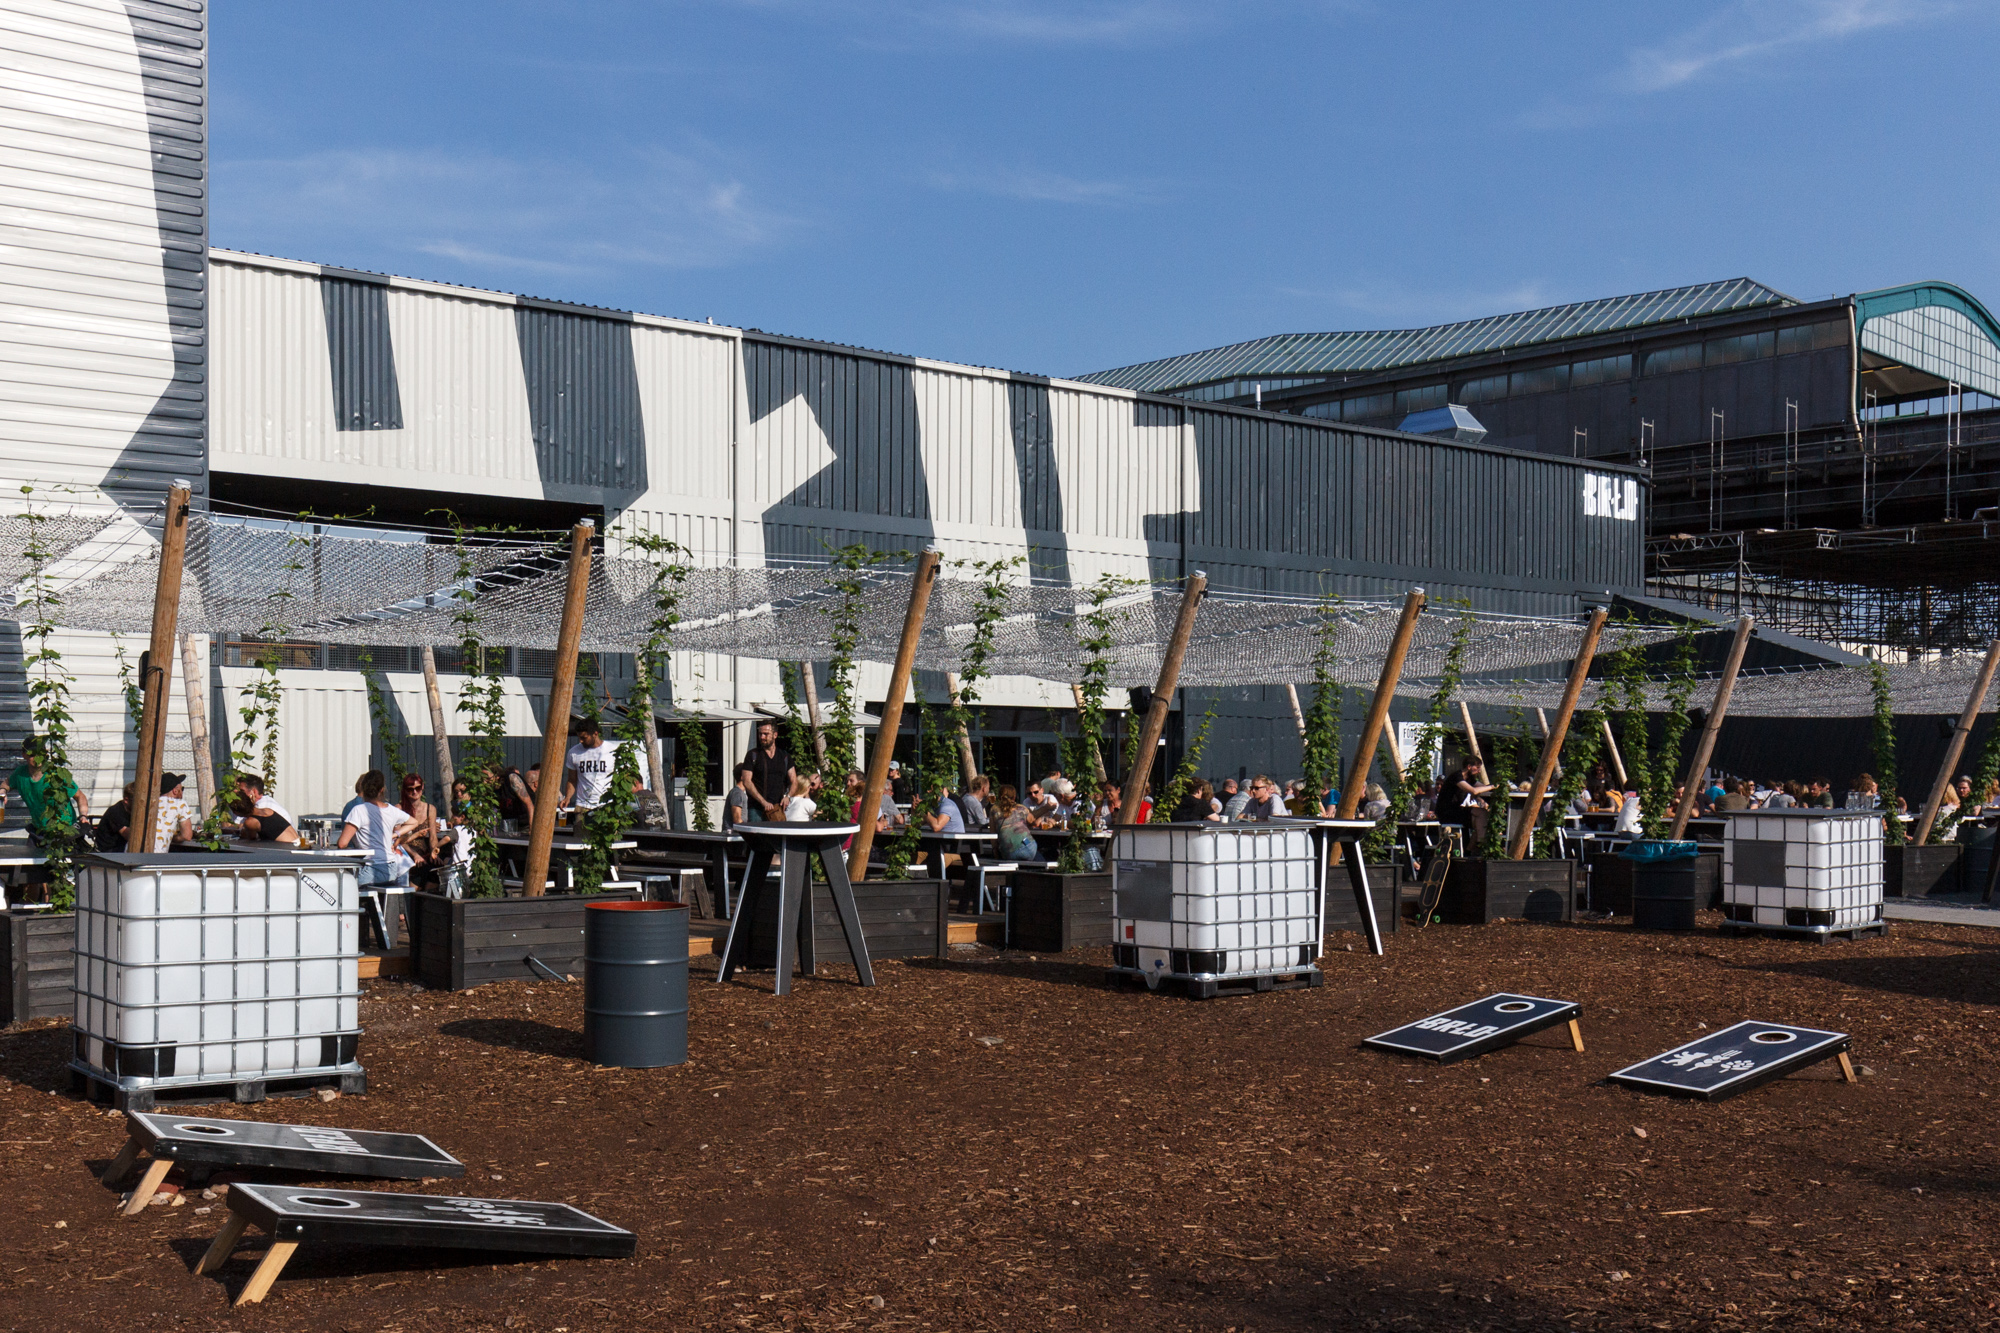 BRLO Brwhouse - a craft beer brewery, bar, restaurant and beer garden and the edge of Park am Gleisdreieck in Berlin